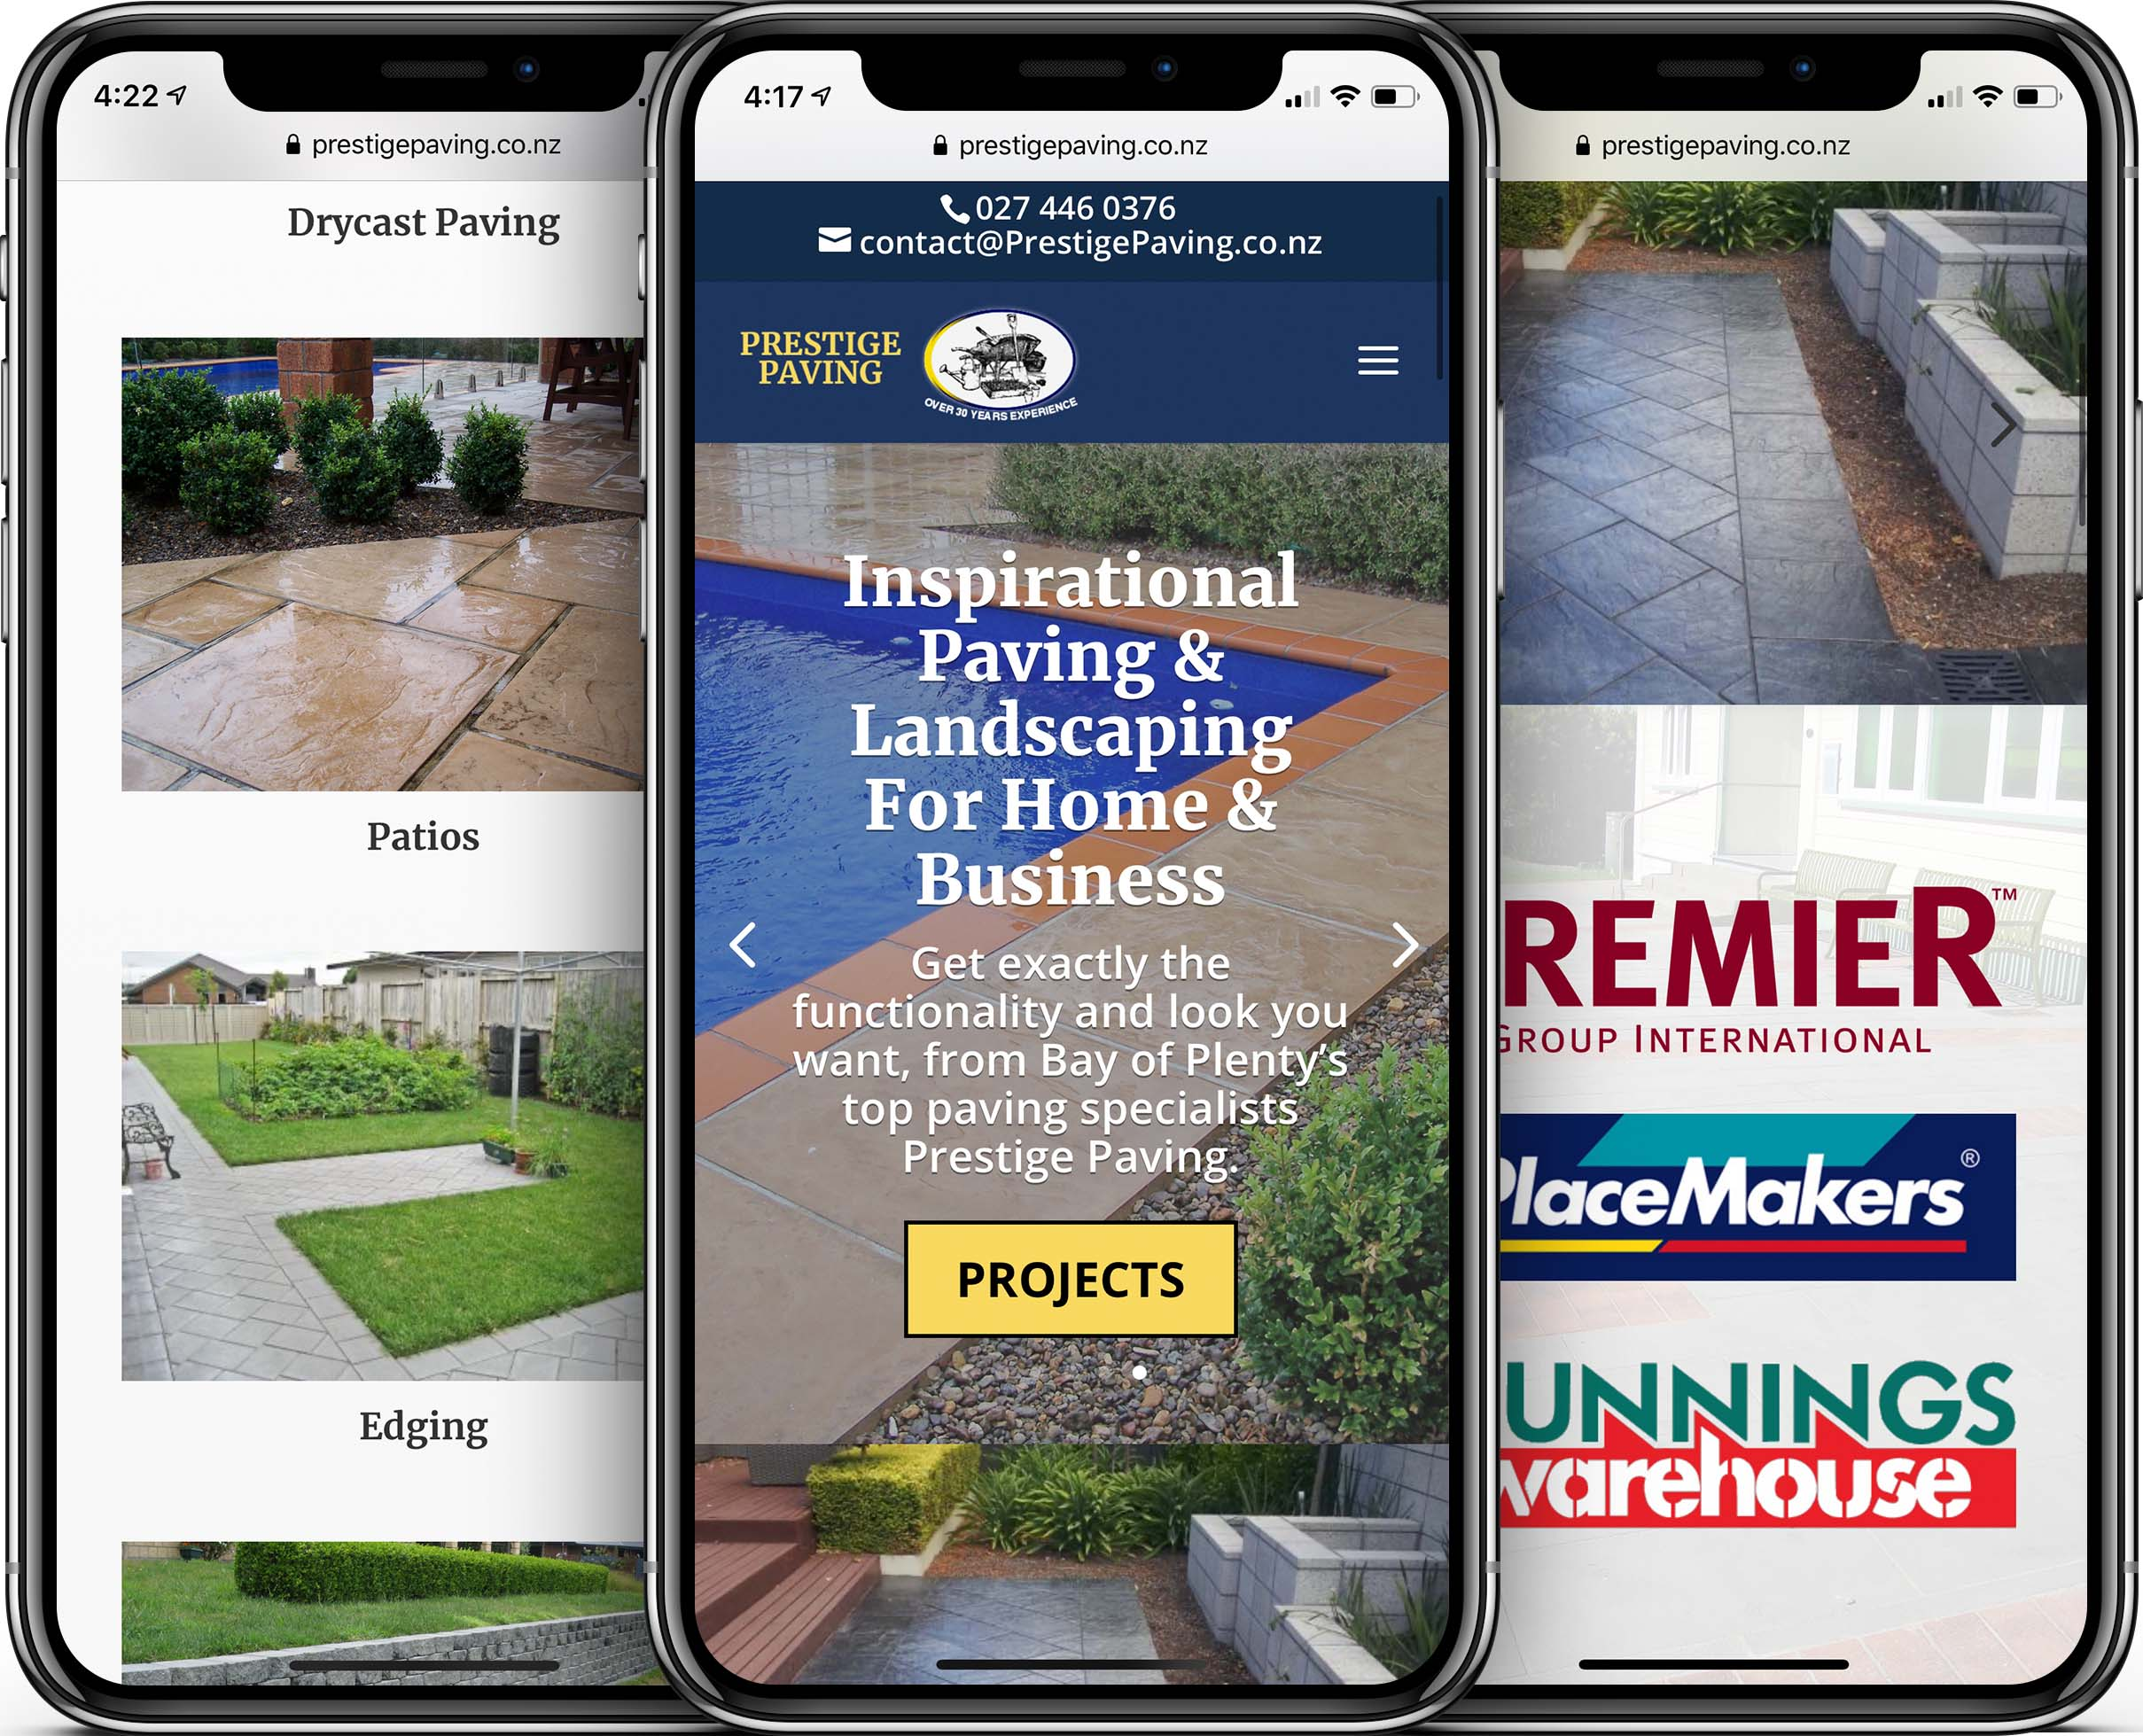 Prestige Paving Mobile-Friendly Web Design